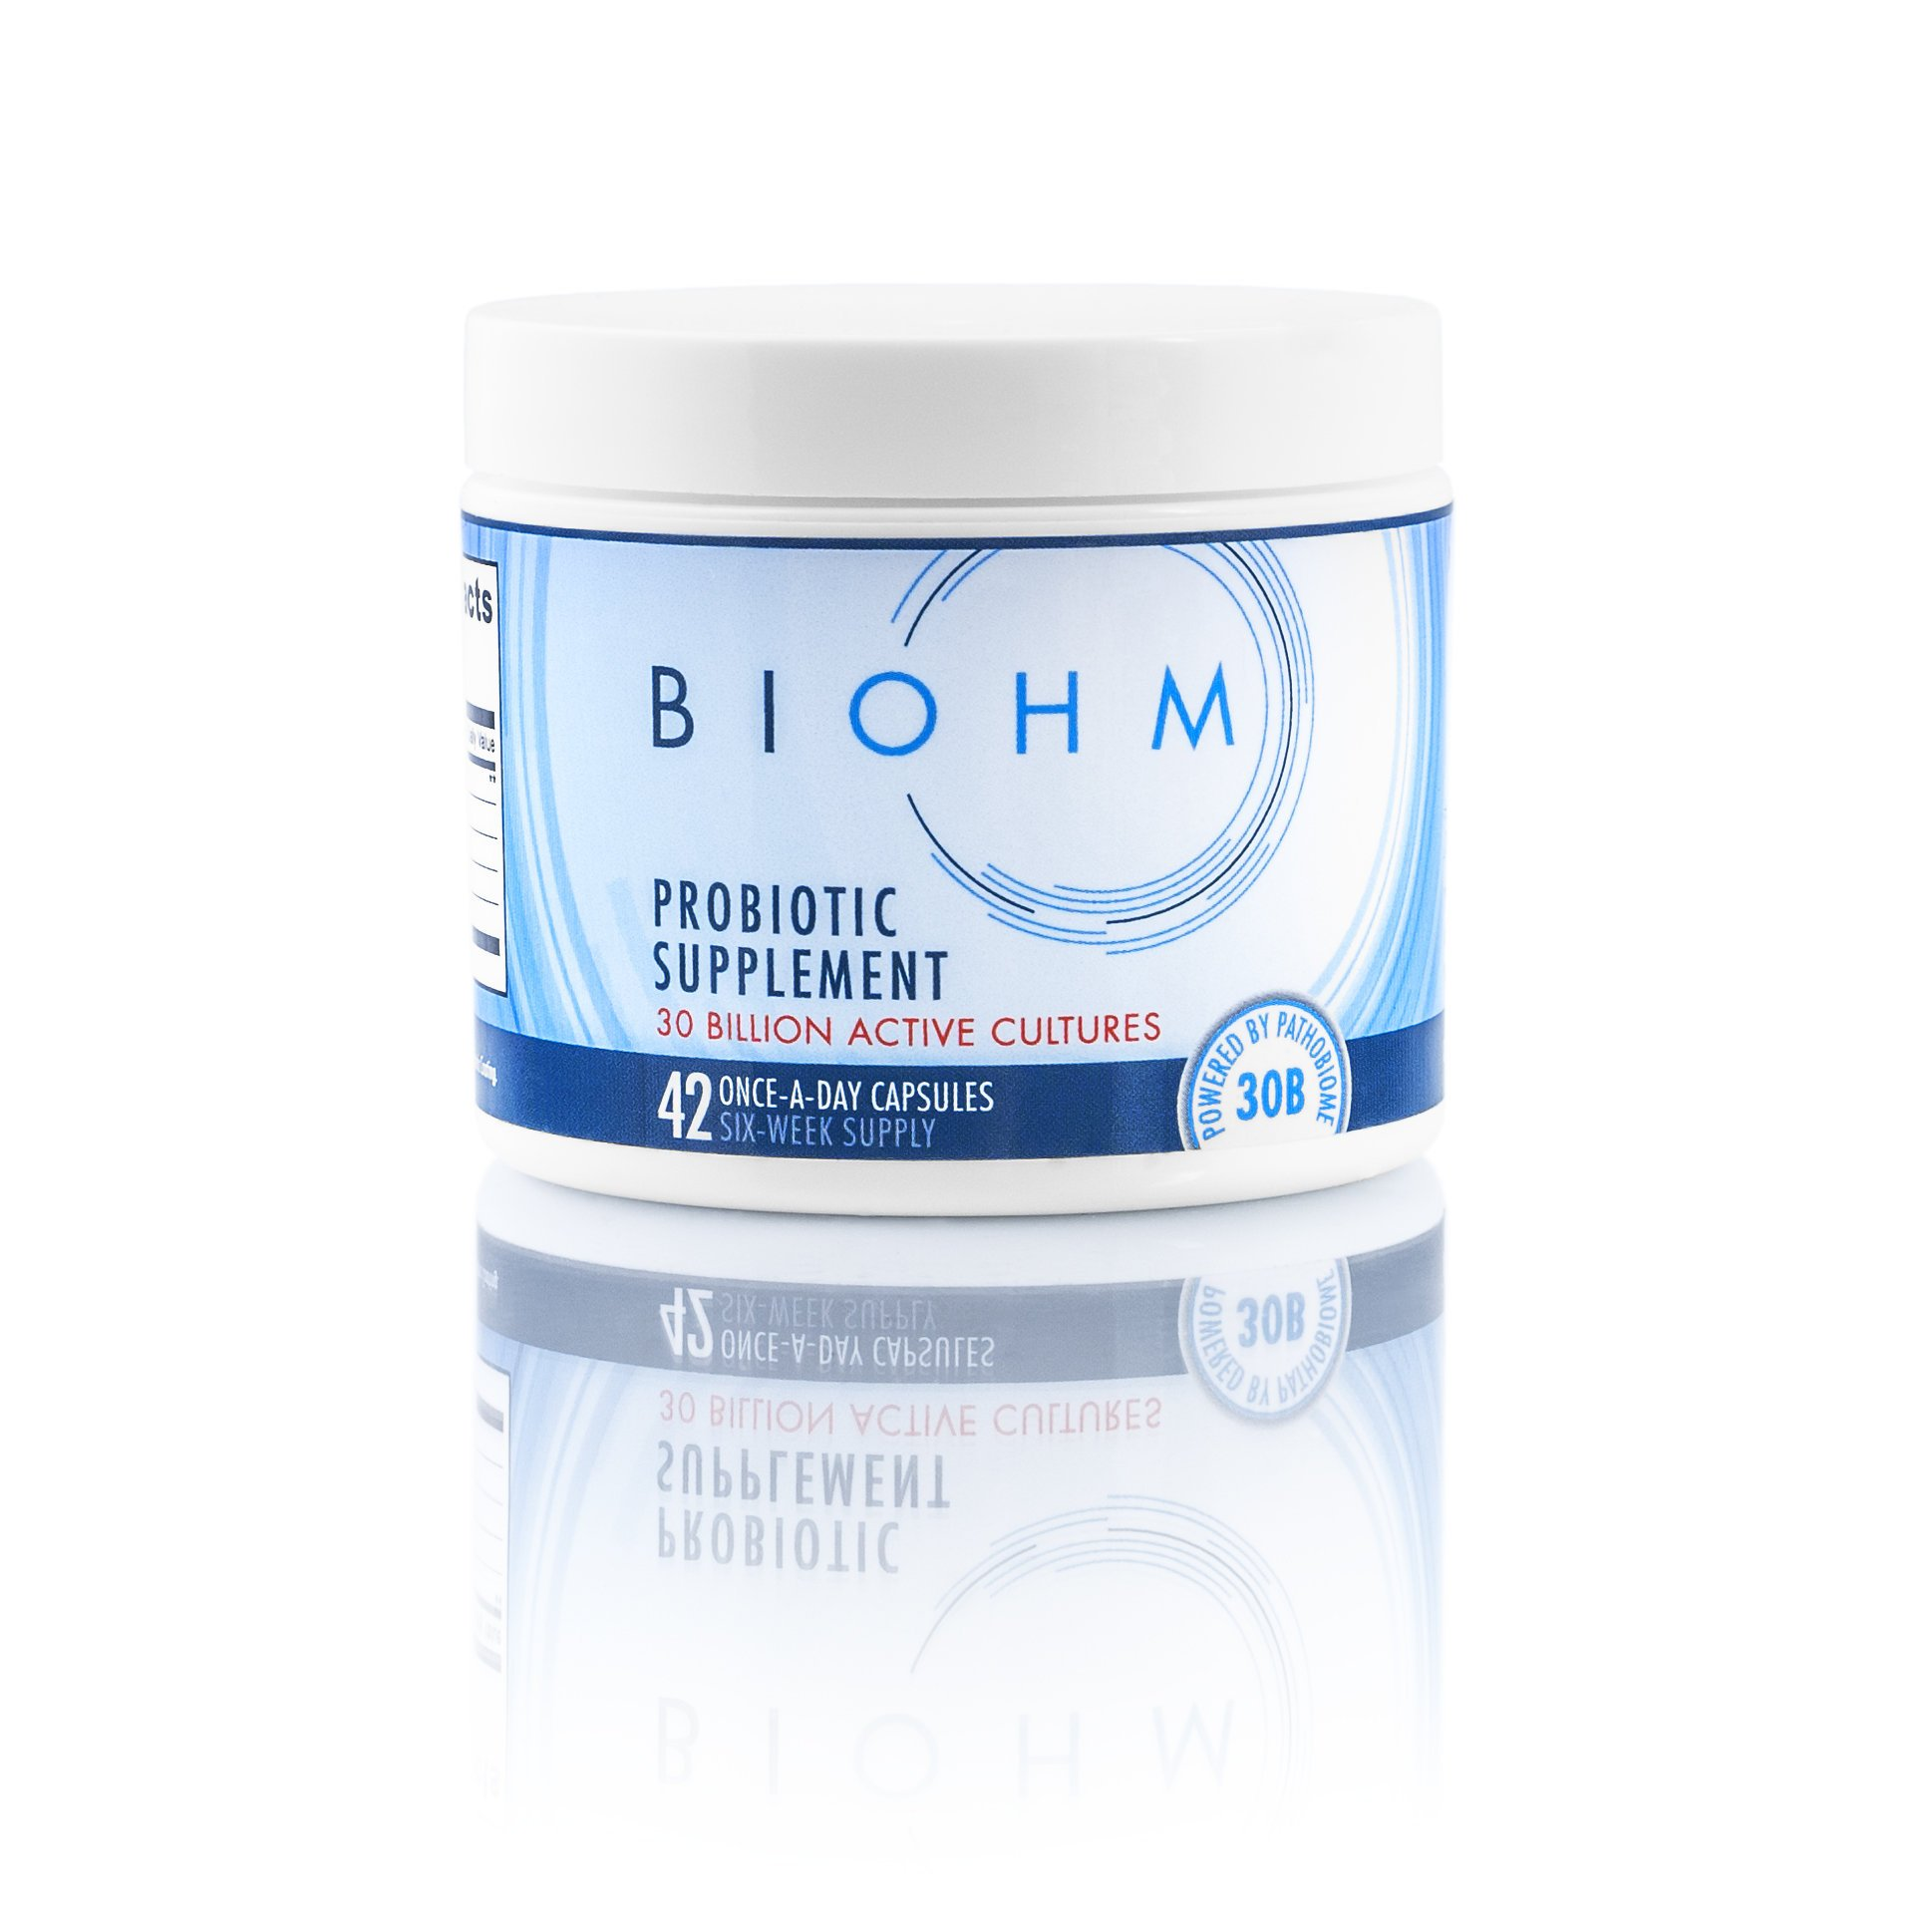 BIOHM Whole Probiotics Digestive Supplement: Probiotic Formula with Bacteria, Fungus, and Enzymes to Aid Digestion for Men & Women - Best for Healthy Intestine & GI Enhancement: Dairy free 42 Capsules